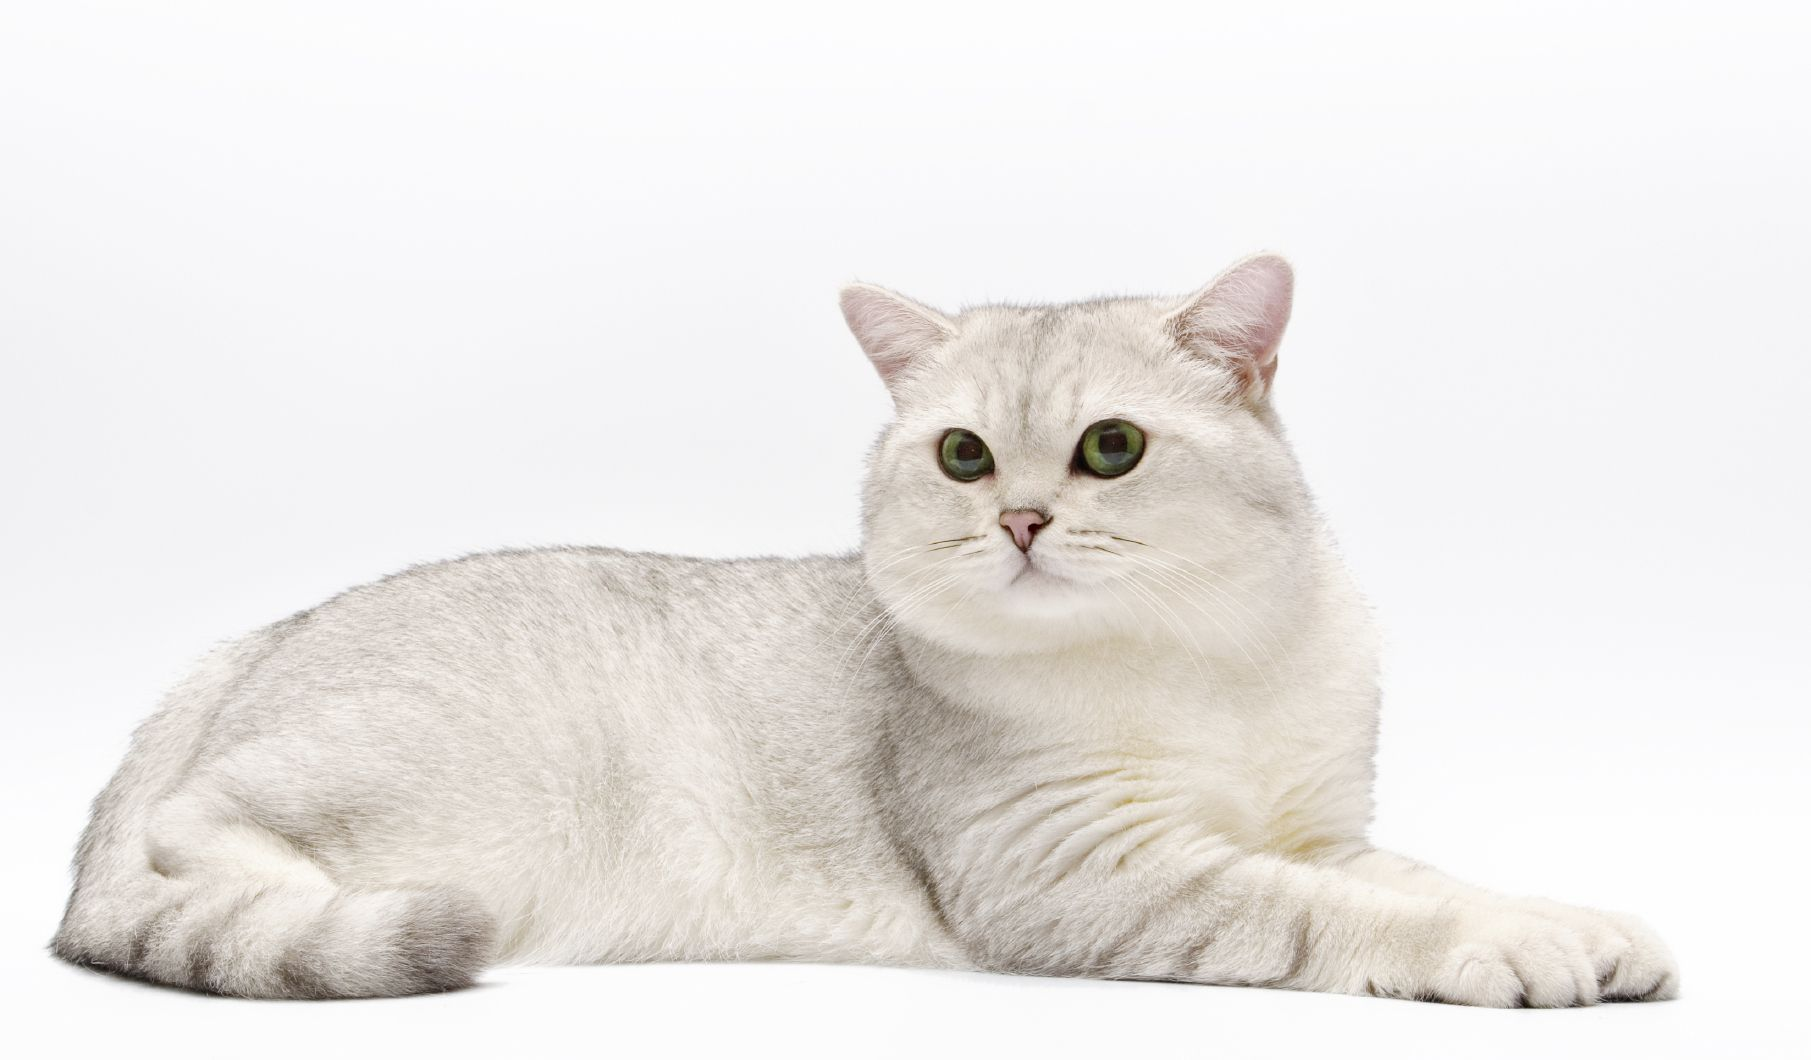 If You Ve Ever Seen A Cat Foam At The Mouth After Riding To The Vet S Office Or Getting A Dose Of Medicine You Know That A Little Cat Drooling Cat Health